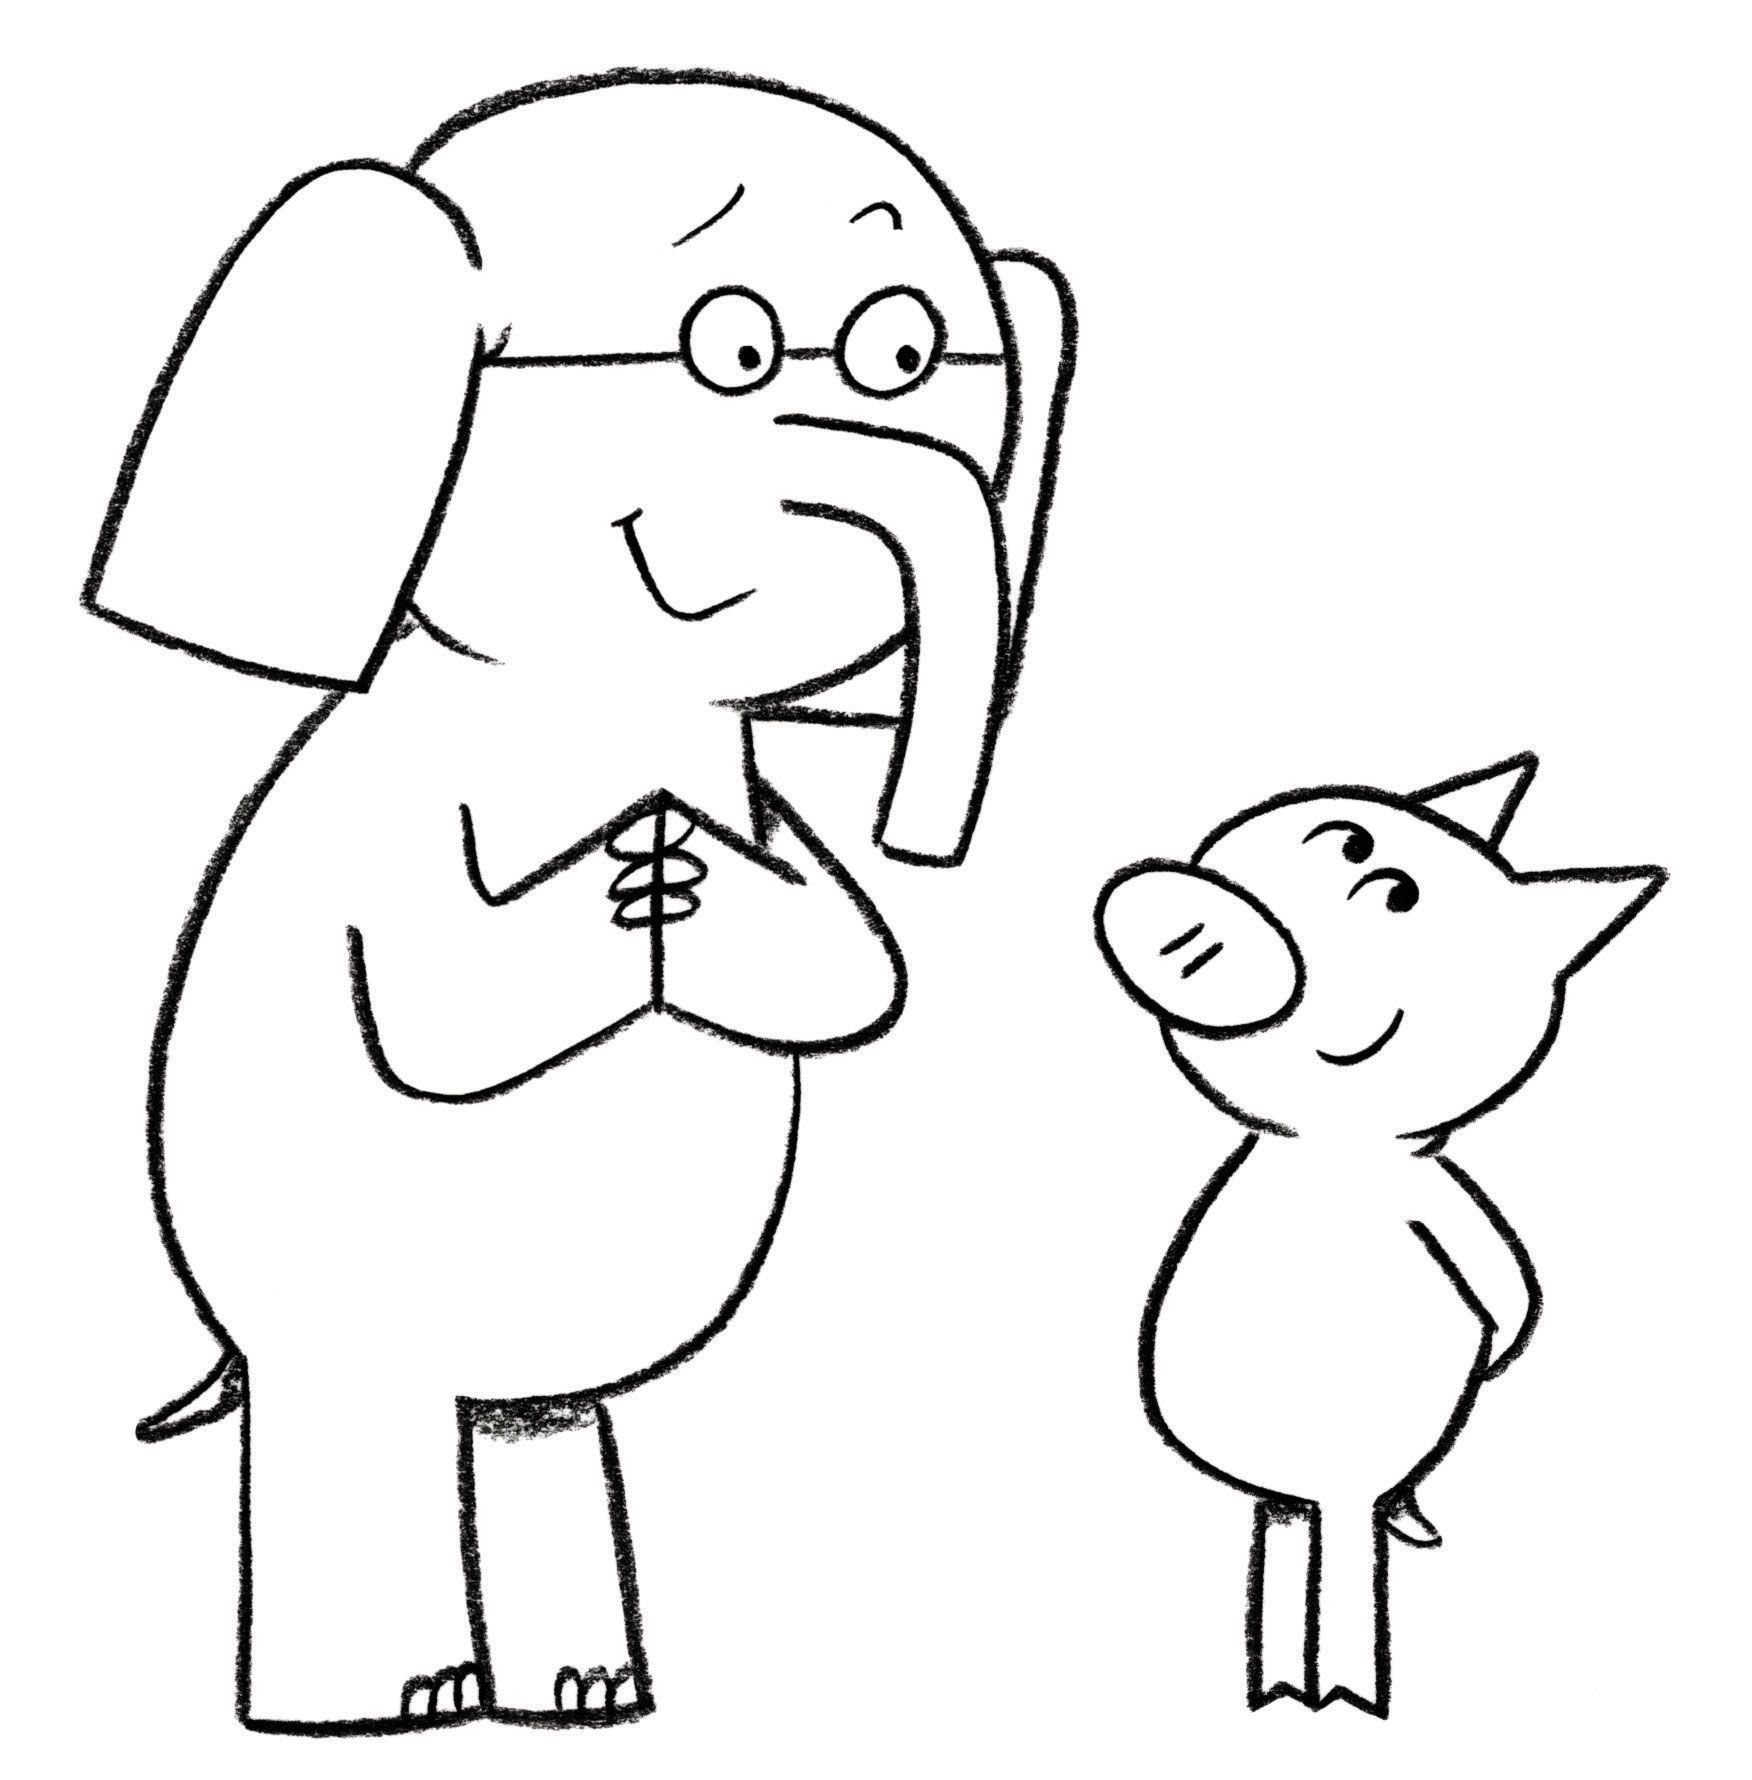 Download Or Print This Amazing Coloring Page Elephant And Piggie